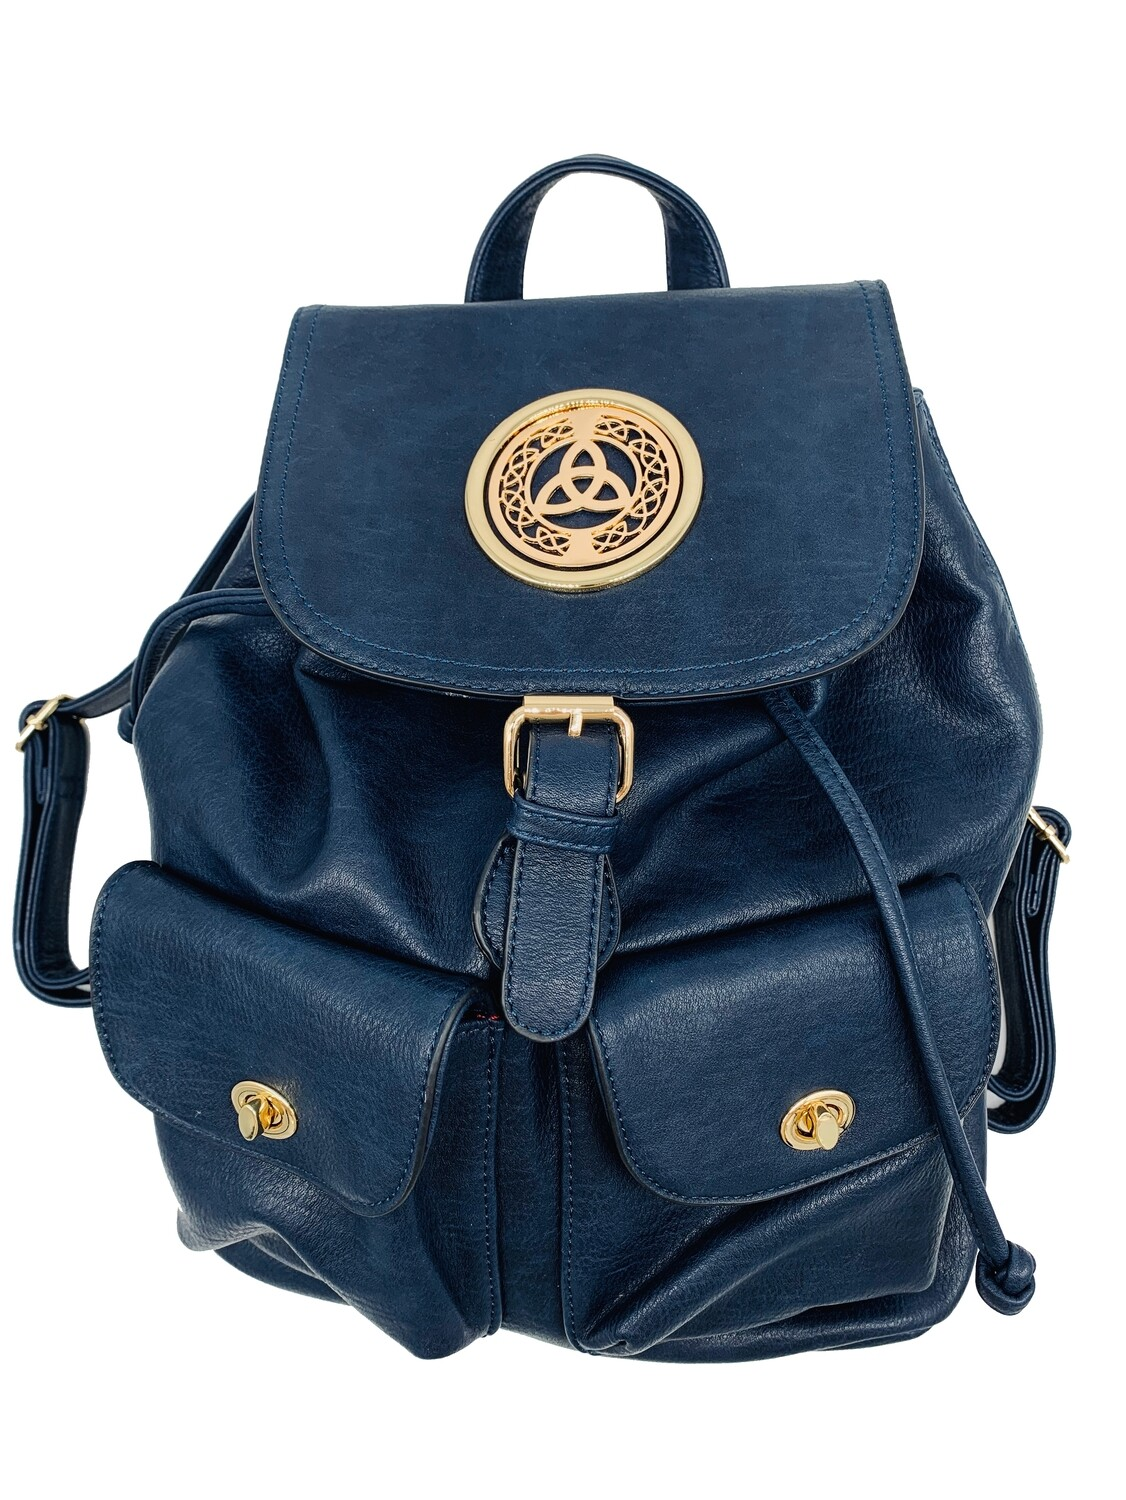 653471 Structure Back Pack navy